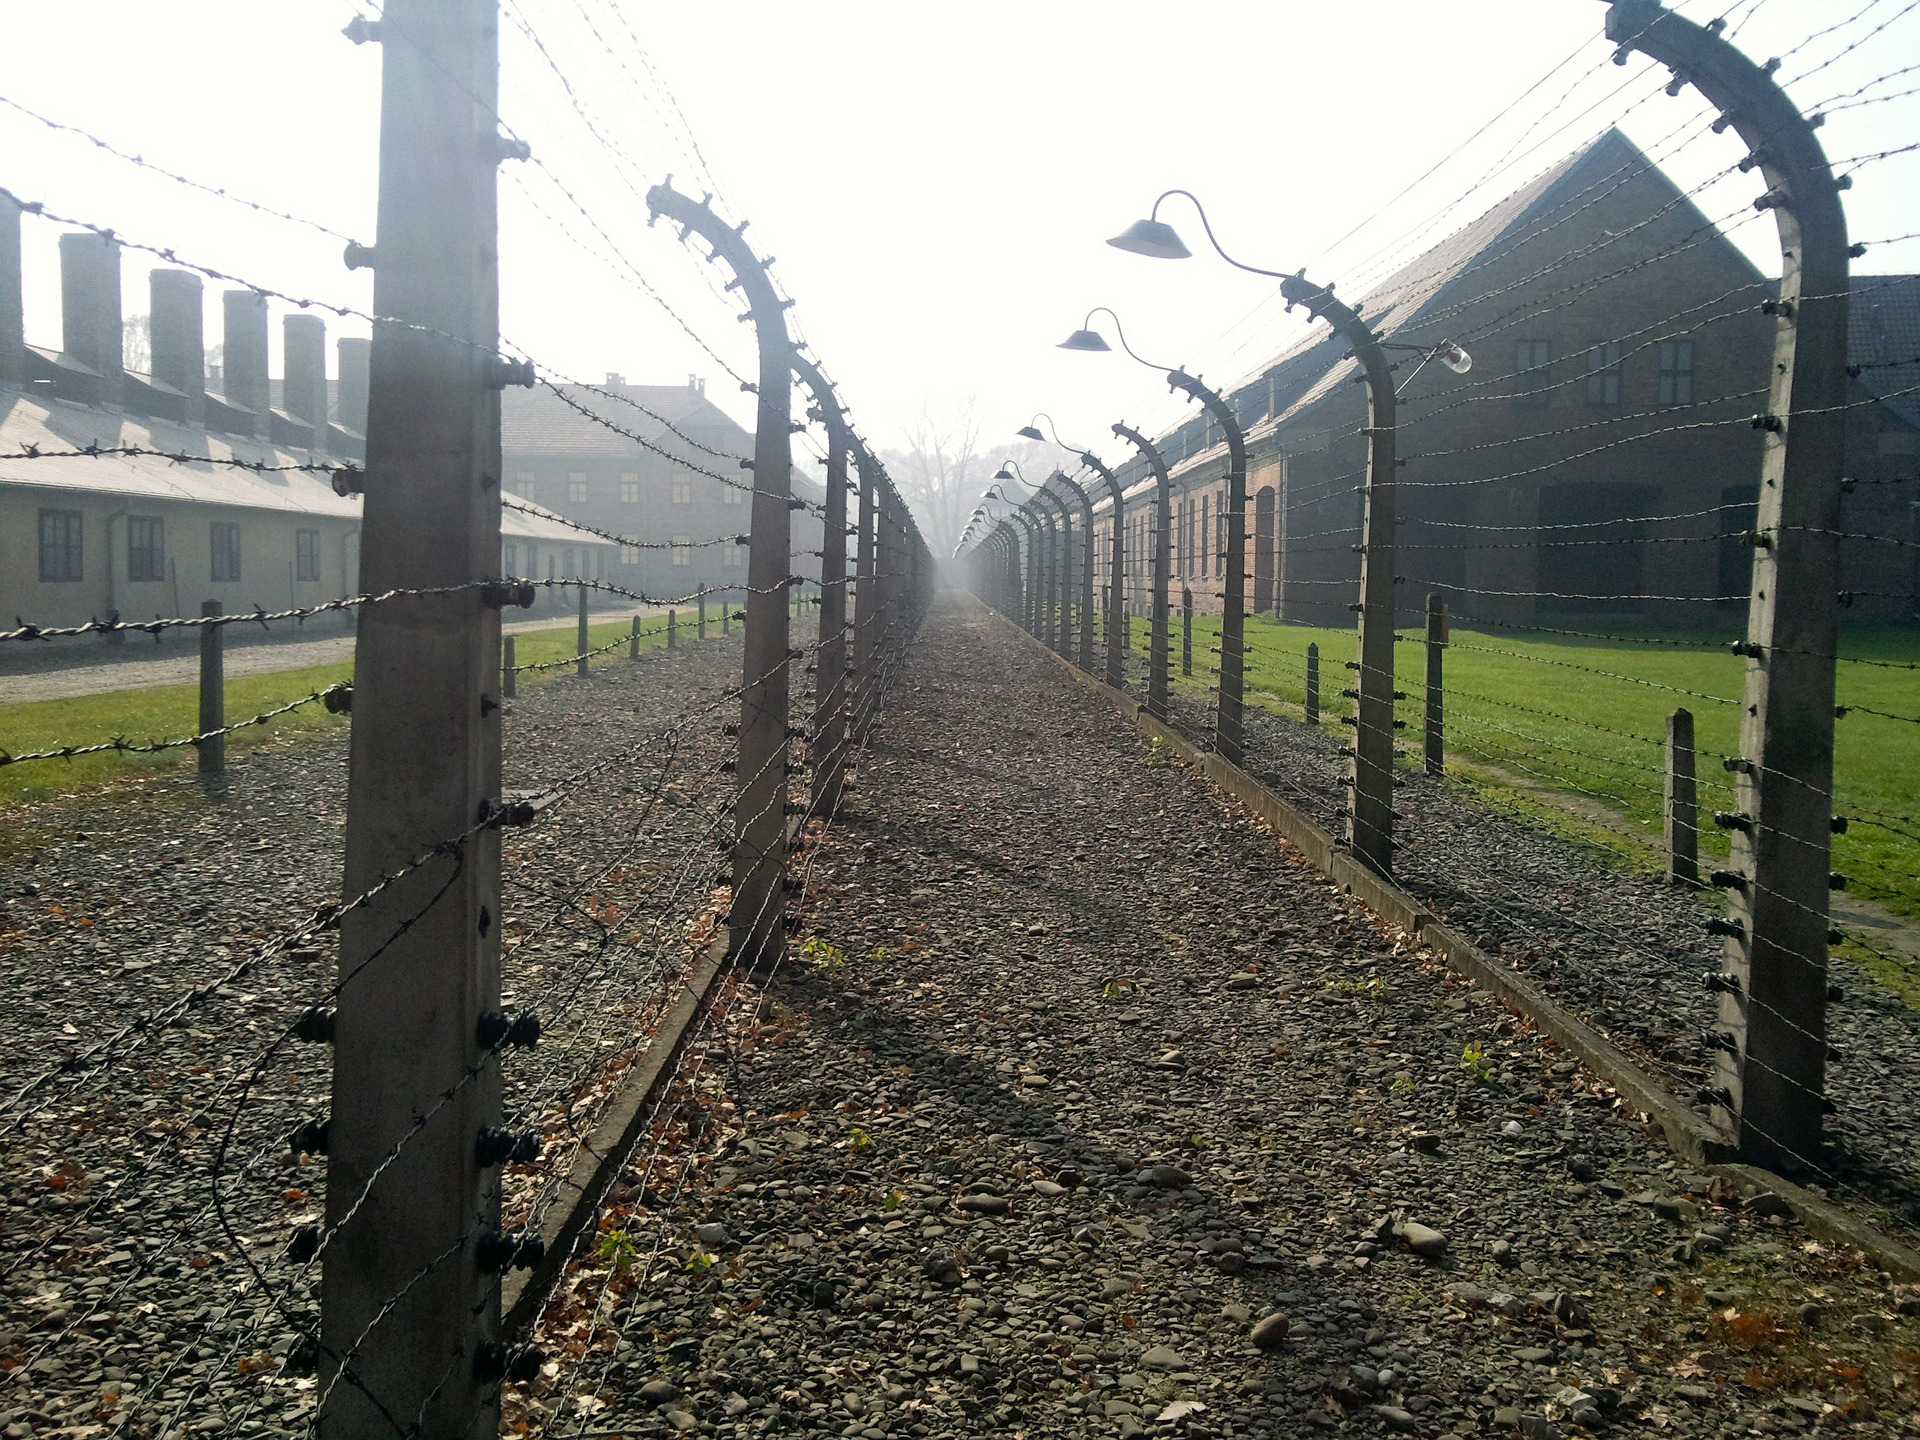 concentration-camp-528969_1920